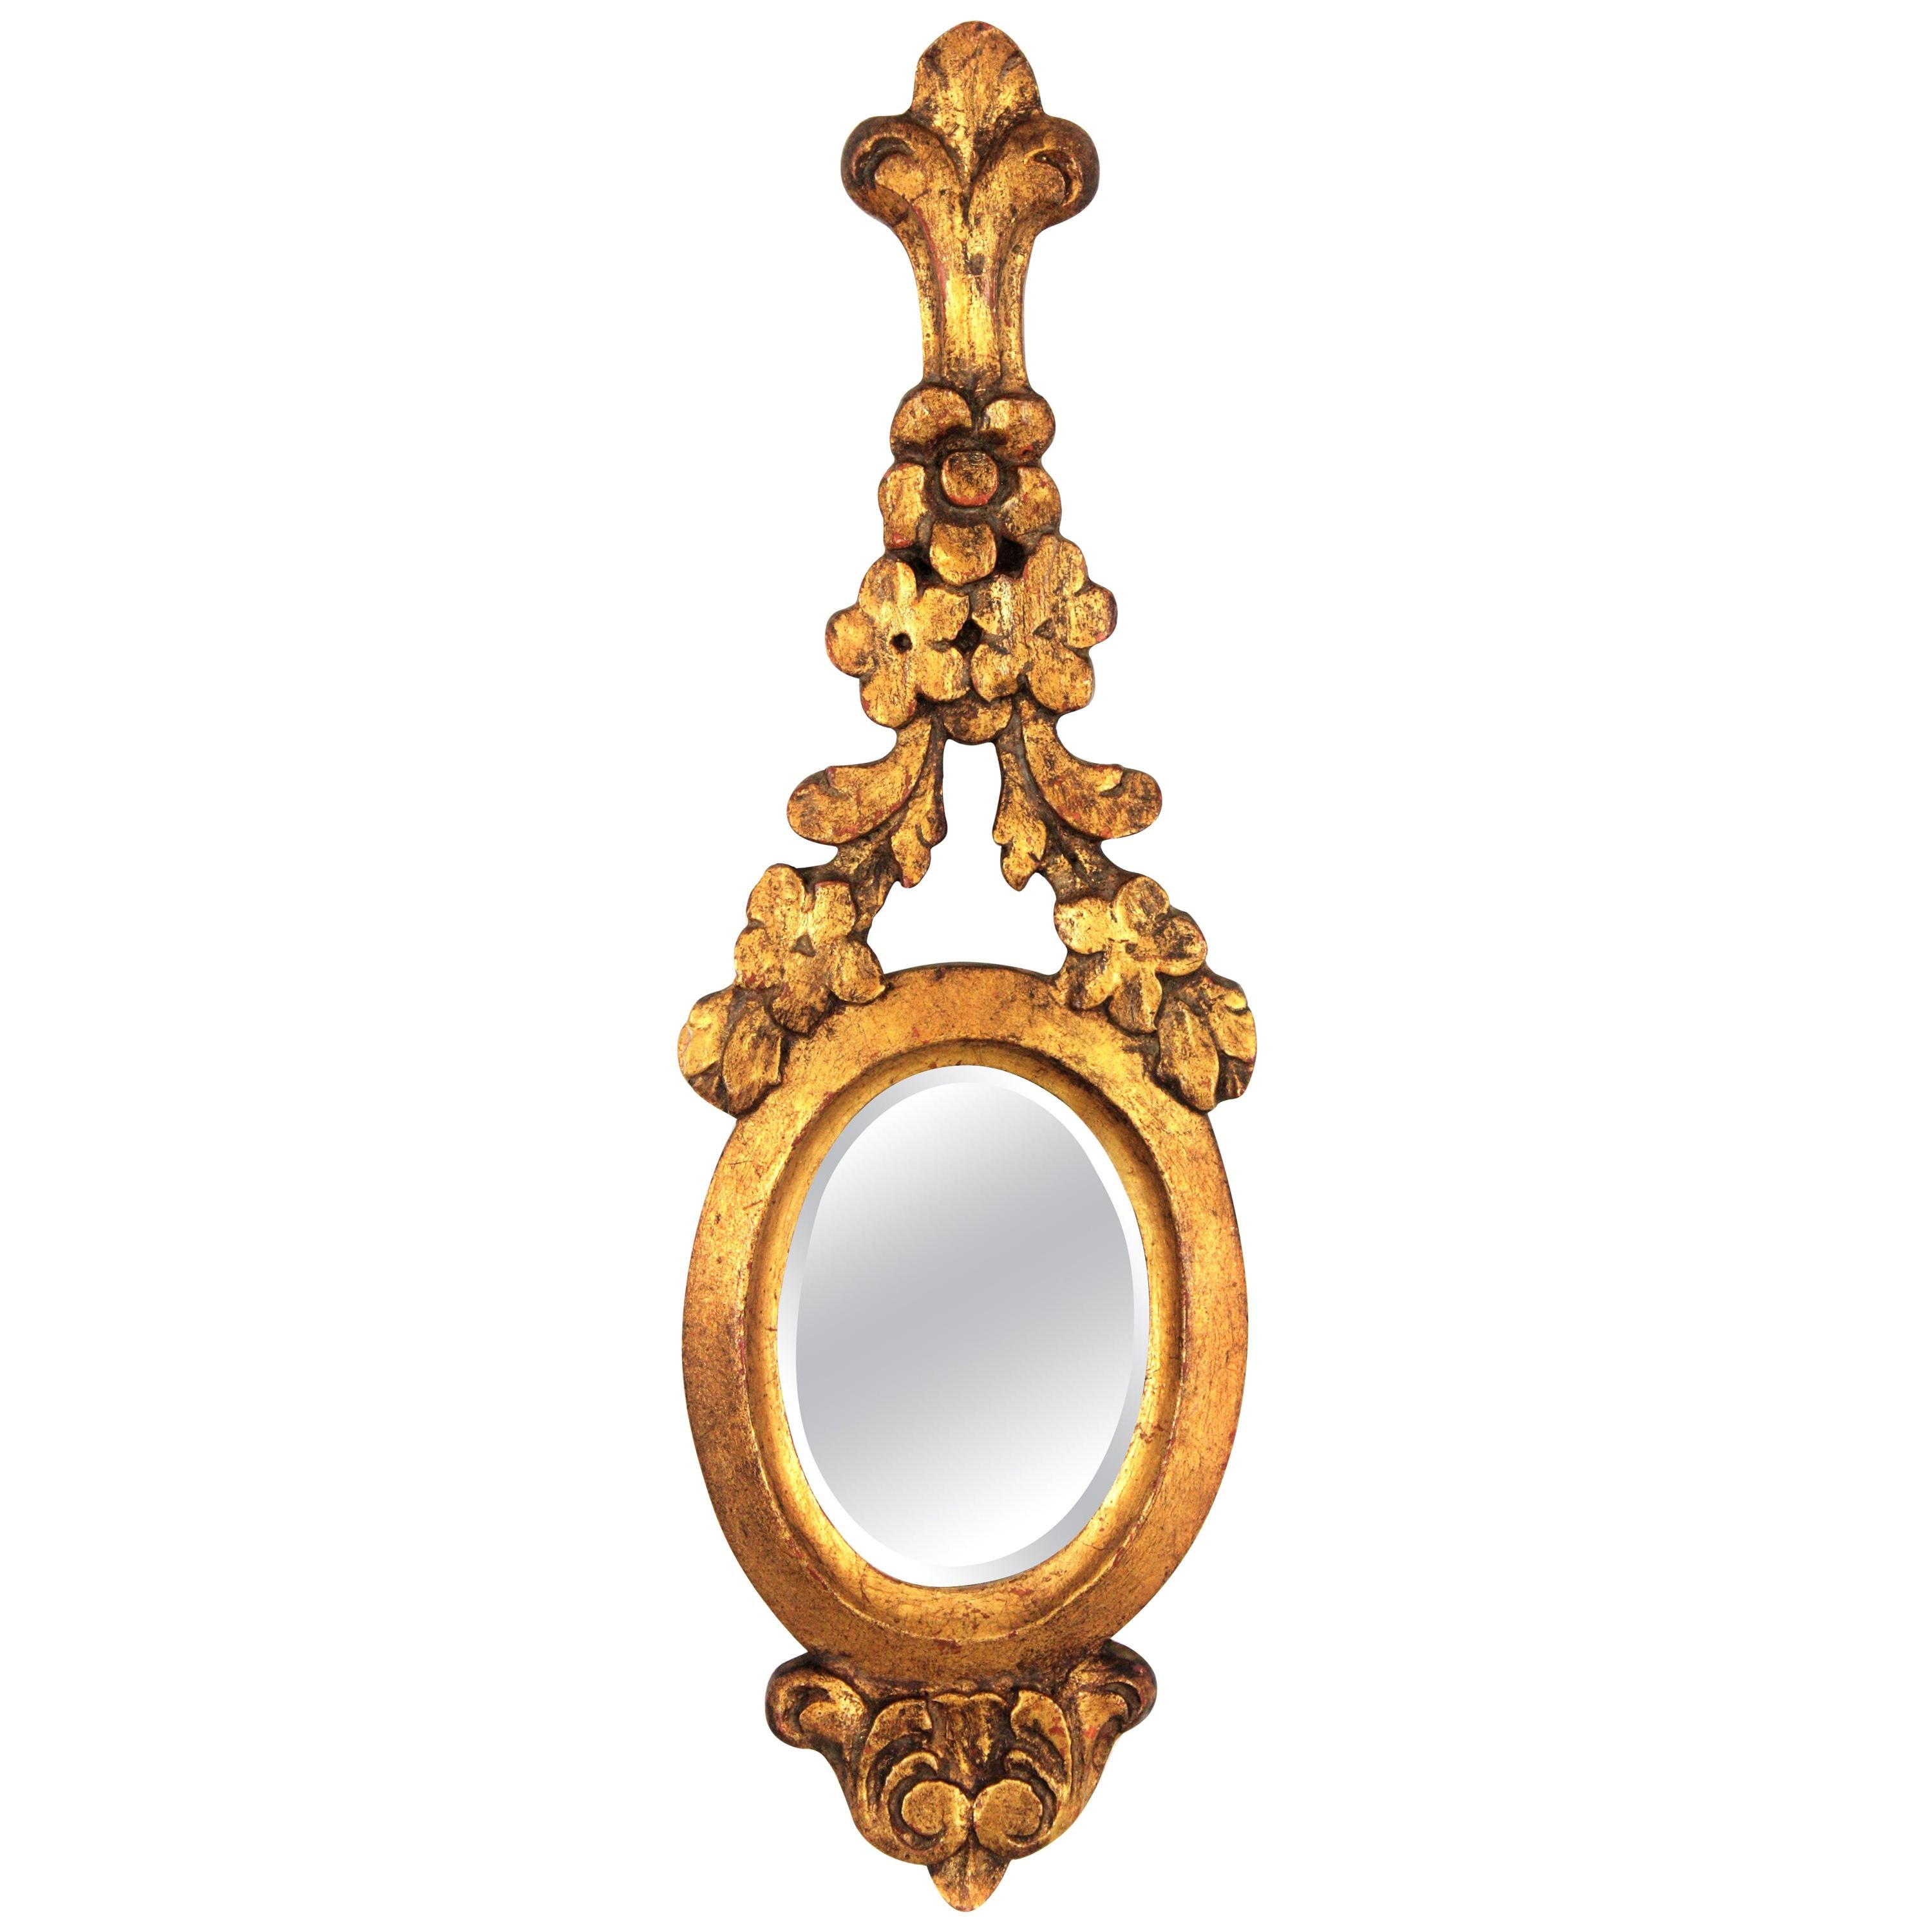 Carved Giltwood Renaissance Style Mini Sized Mirror with Crest, 1930s